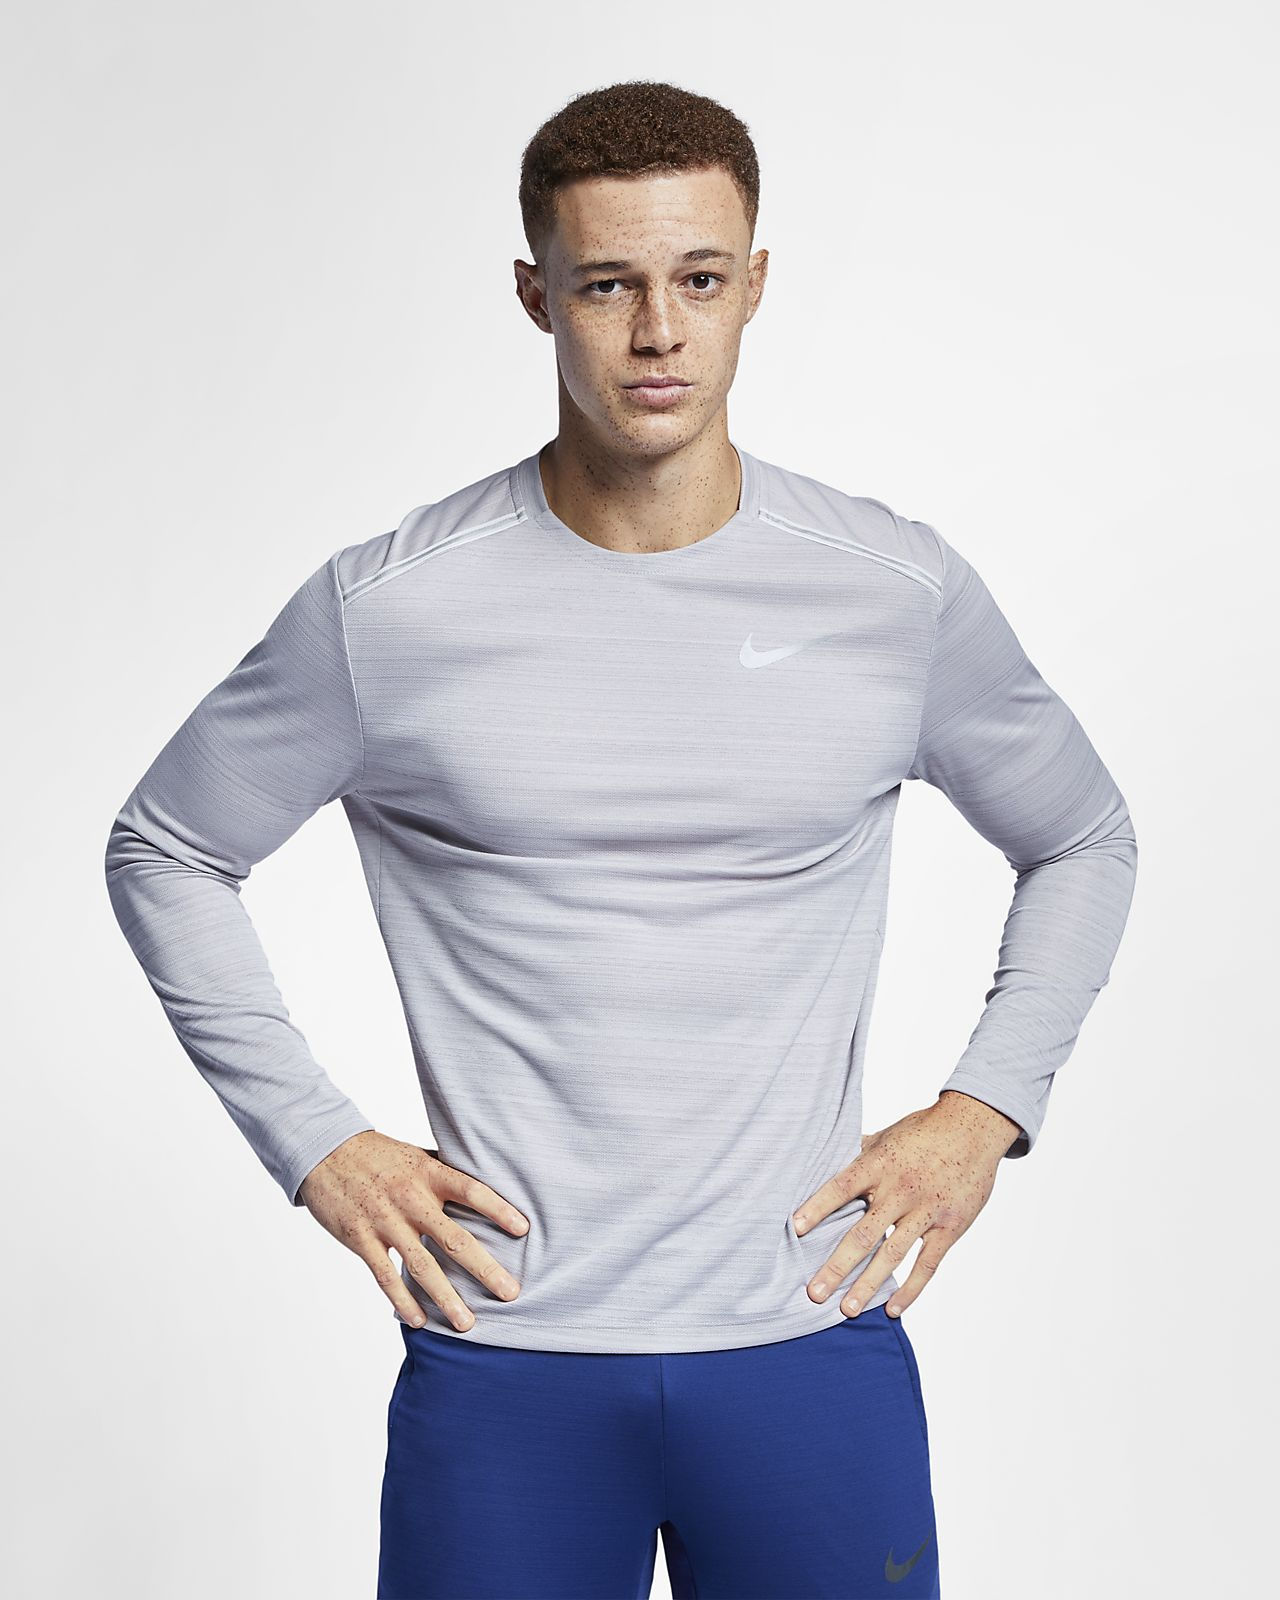 Nike Dri-FIT Miler Men's Long-Sleeve Running Top